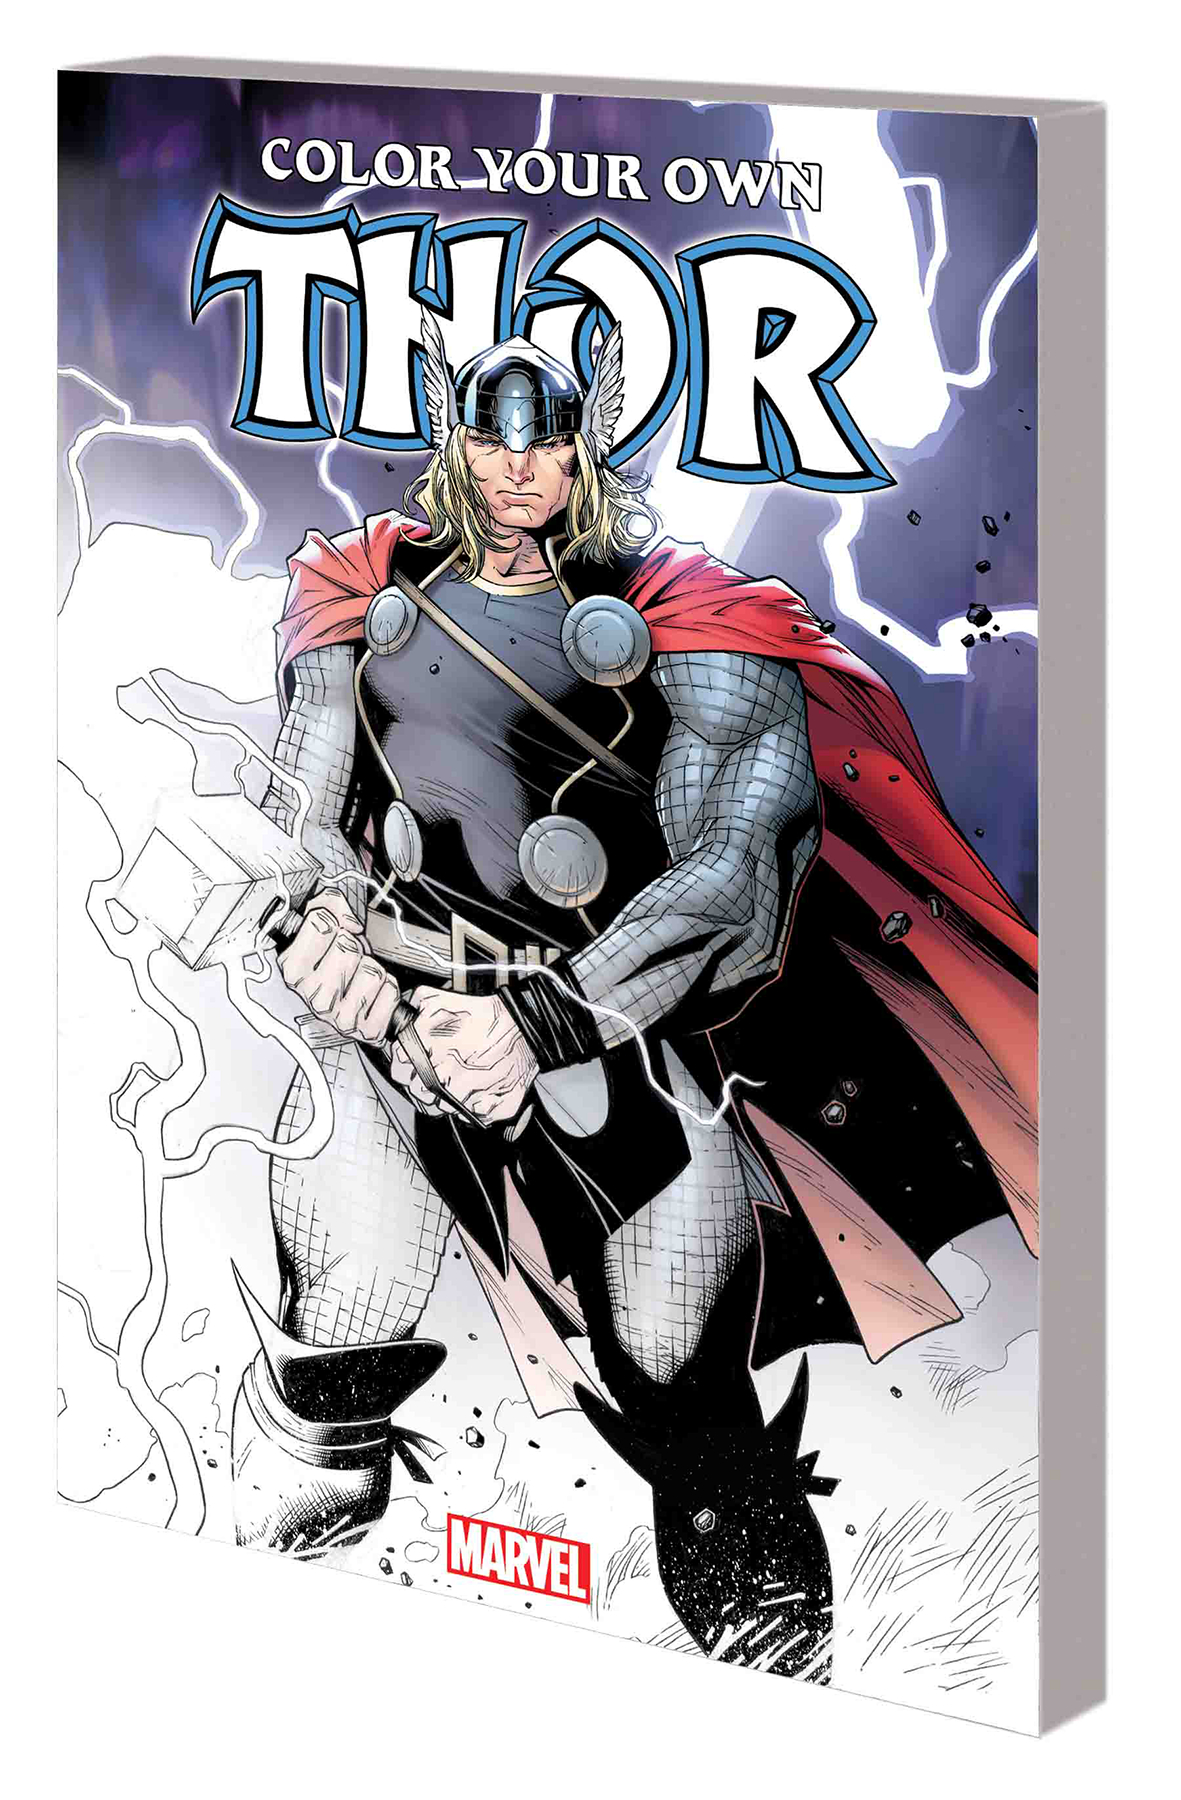 Color Your Own: Thor Review